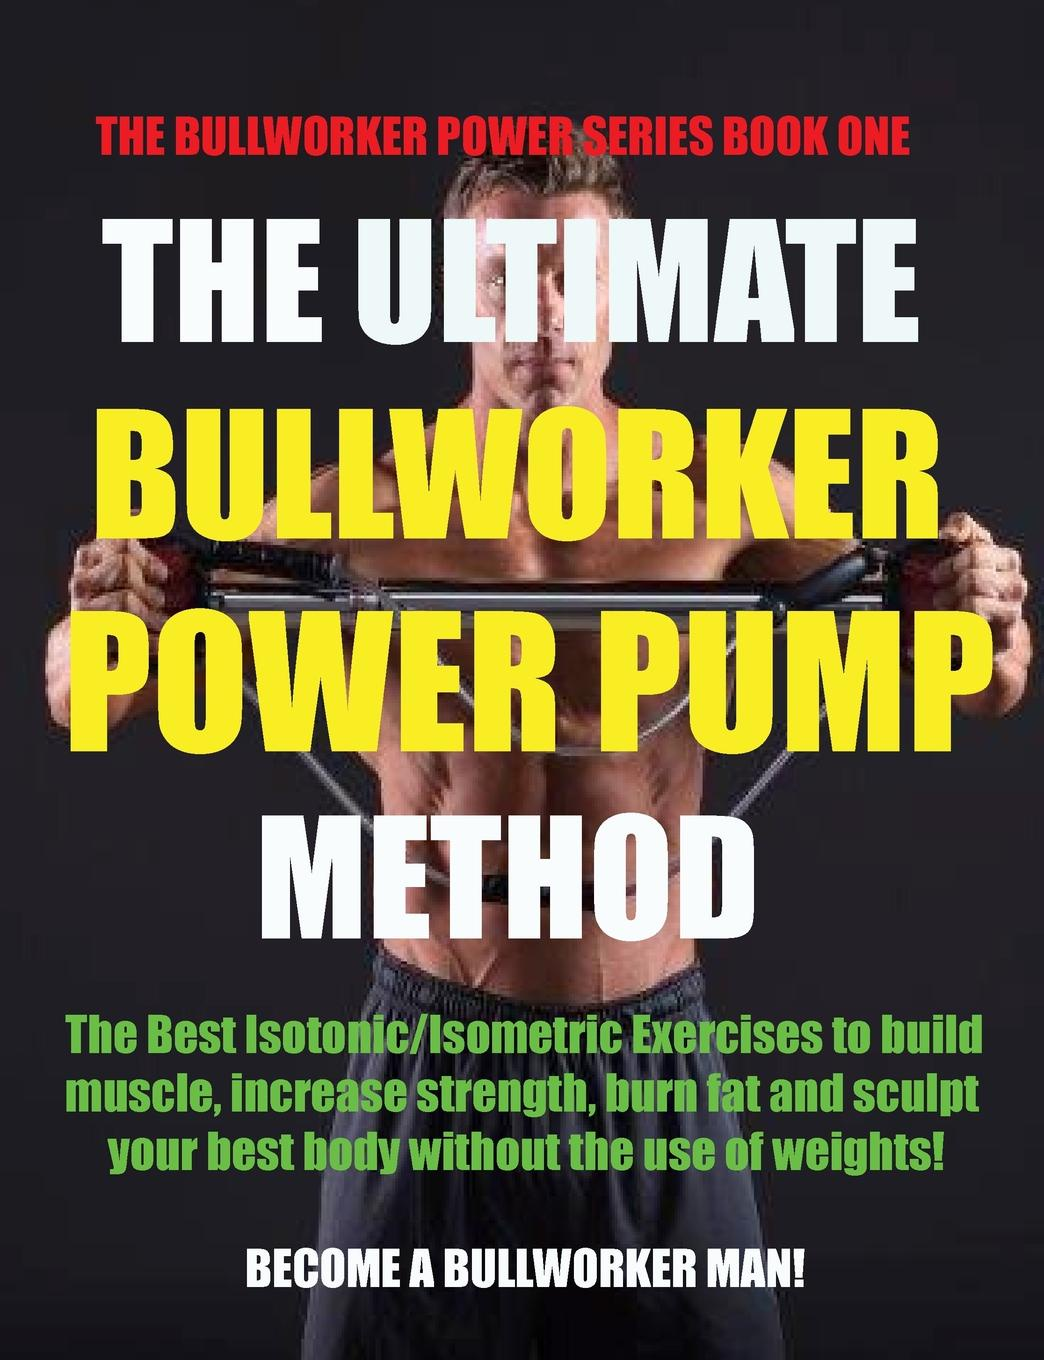 The Ultimate Bullworker Power Pump Method. Bullworker Power Series xuankun motorcycle cnc modified on the pump on the pump hydraulic clutch main pump straight on the pump visual oil pot